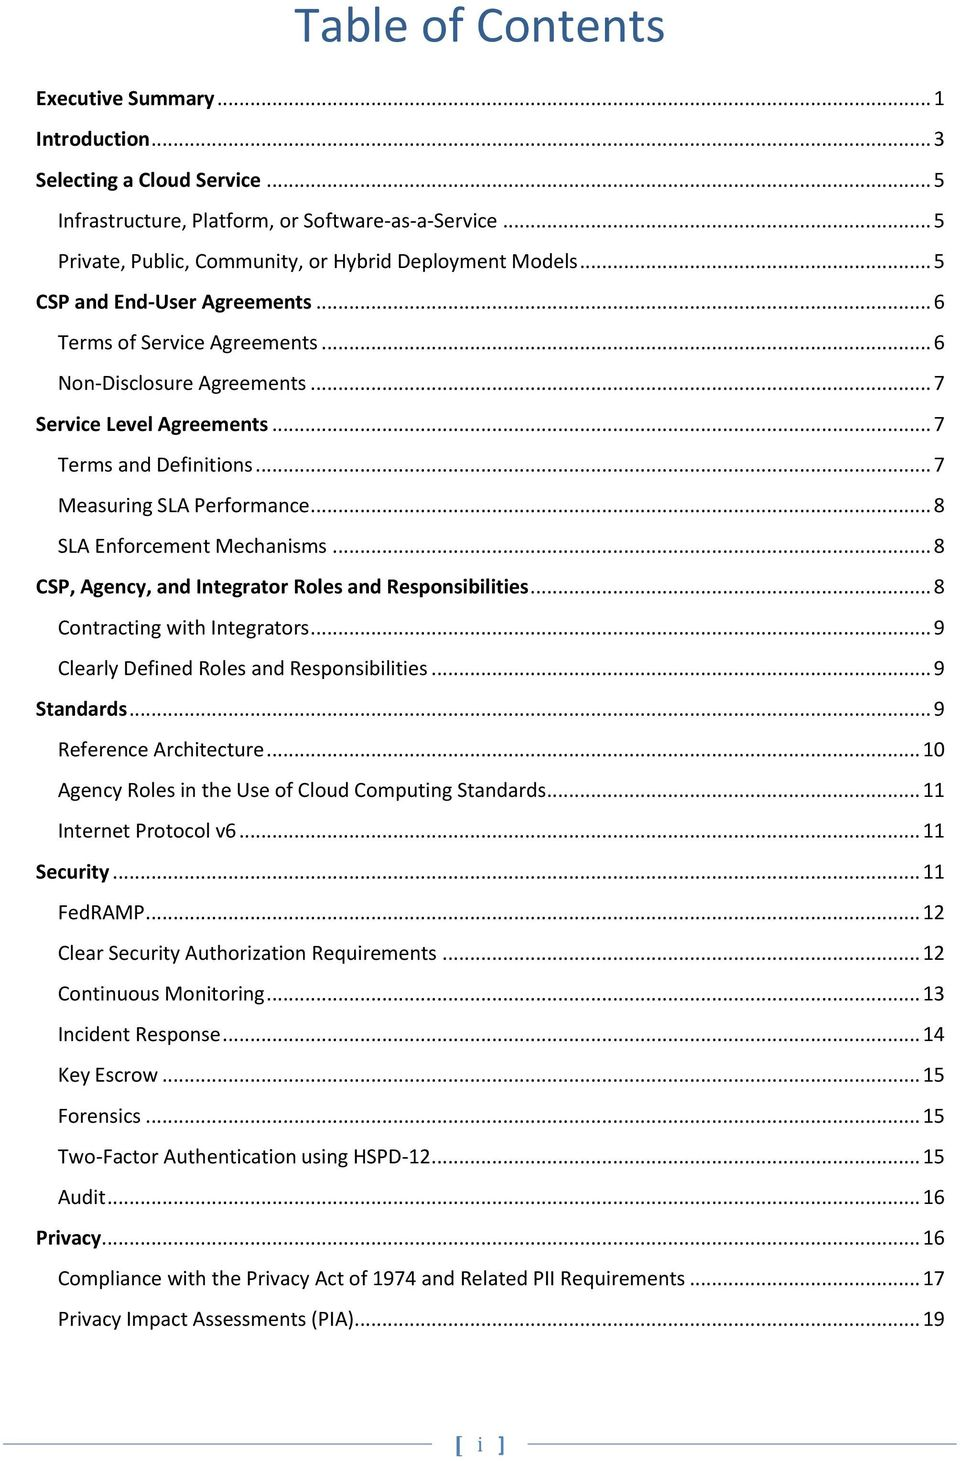 .. 8 SLA Enforcement Mechanisms... 8 CSP, Agency, and Integrator Roles and Responsibilities... 8 Contracting with Integrators... 9 Clearly Defined Roles and Responsibilities... 9 Standards.